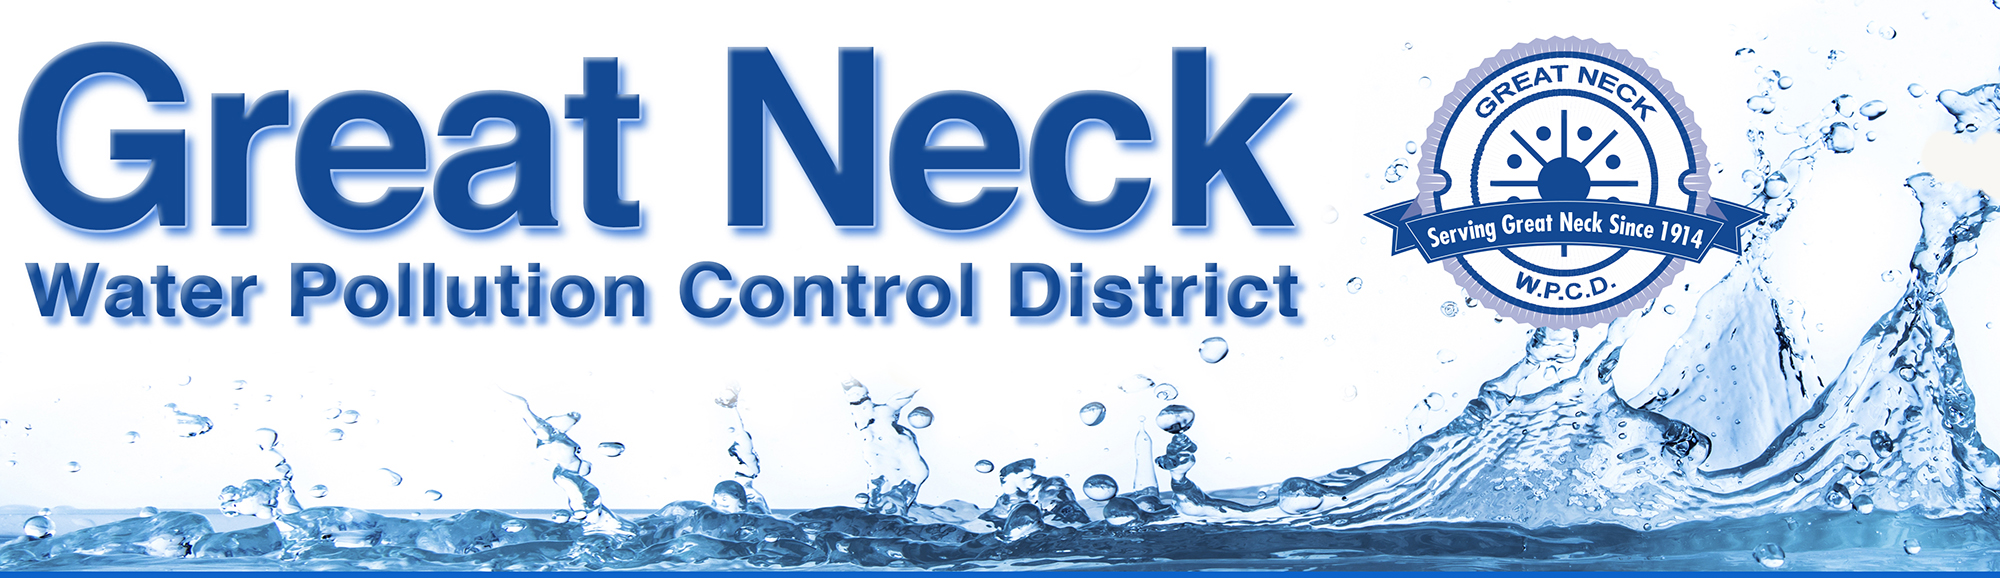 Great Neck Water Pollution Control District - Logo and Masthead 100 Year Anniversary